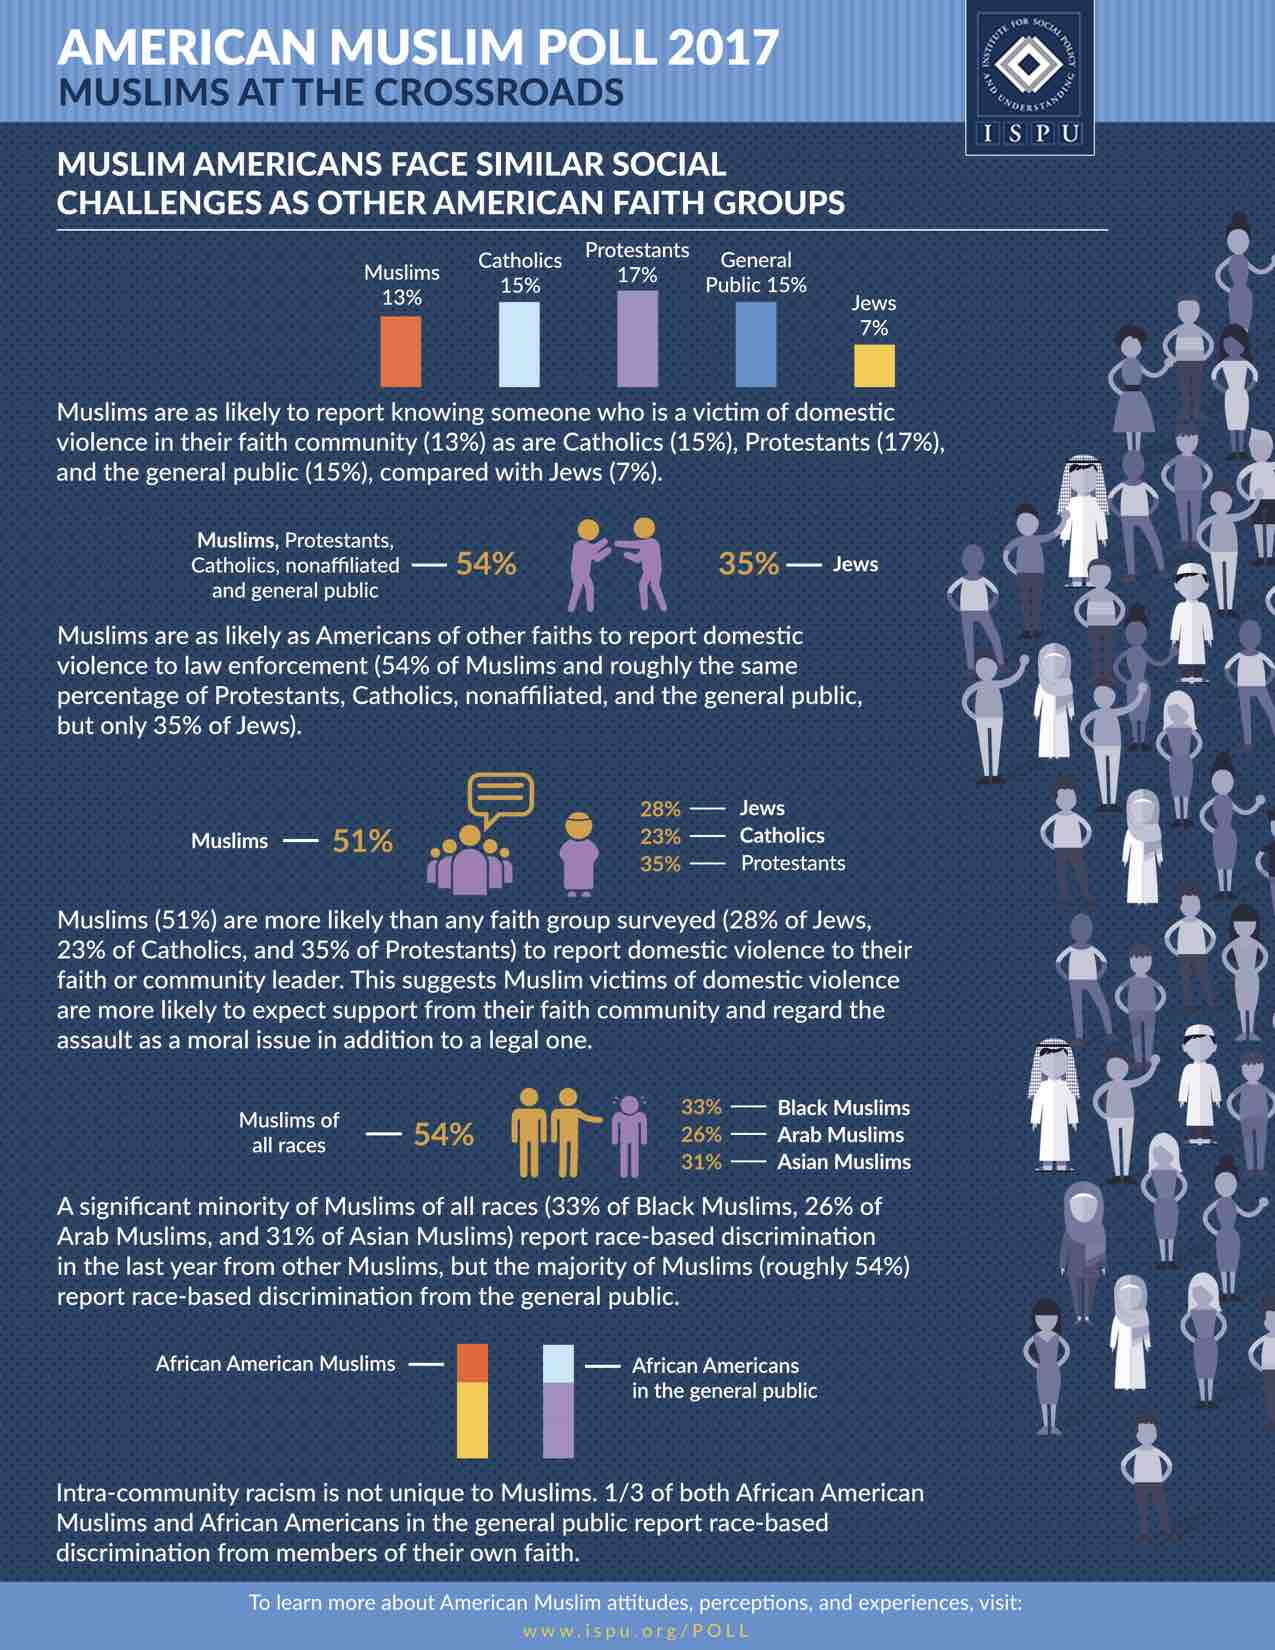 Infographic showing Muslim Americans Face Similar Social Challenges as Other American Faith Groups